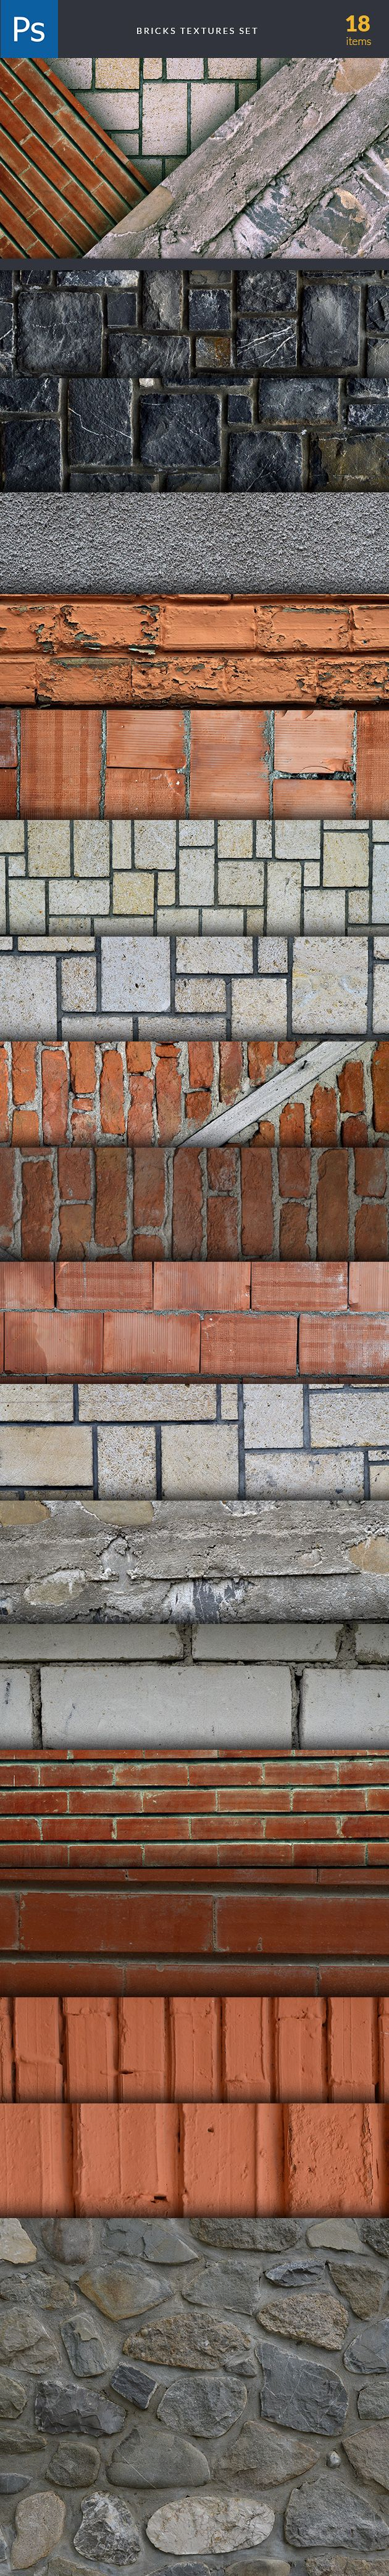 Brick Textures are part of The Ultimate Textures Bundle. Find and buy them here: https://www.inkydeals.com/deal/the-ultimate-textures-bundle-2/